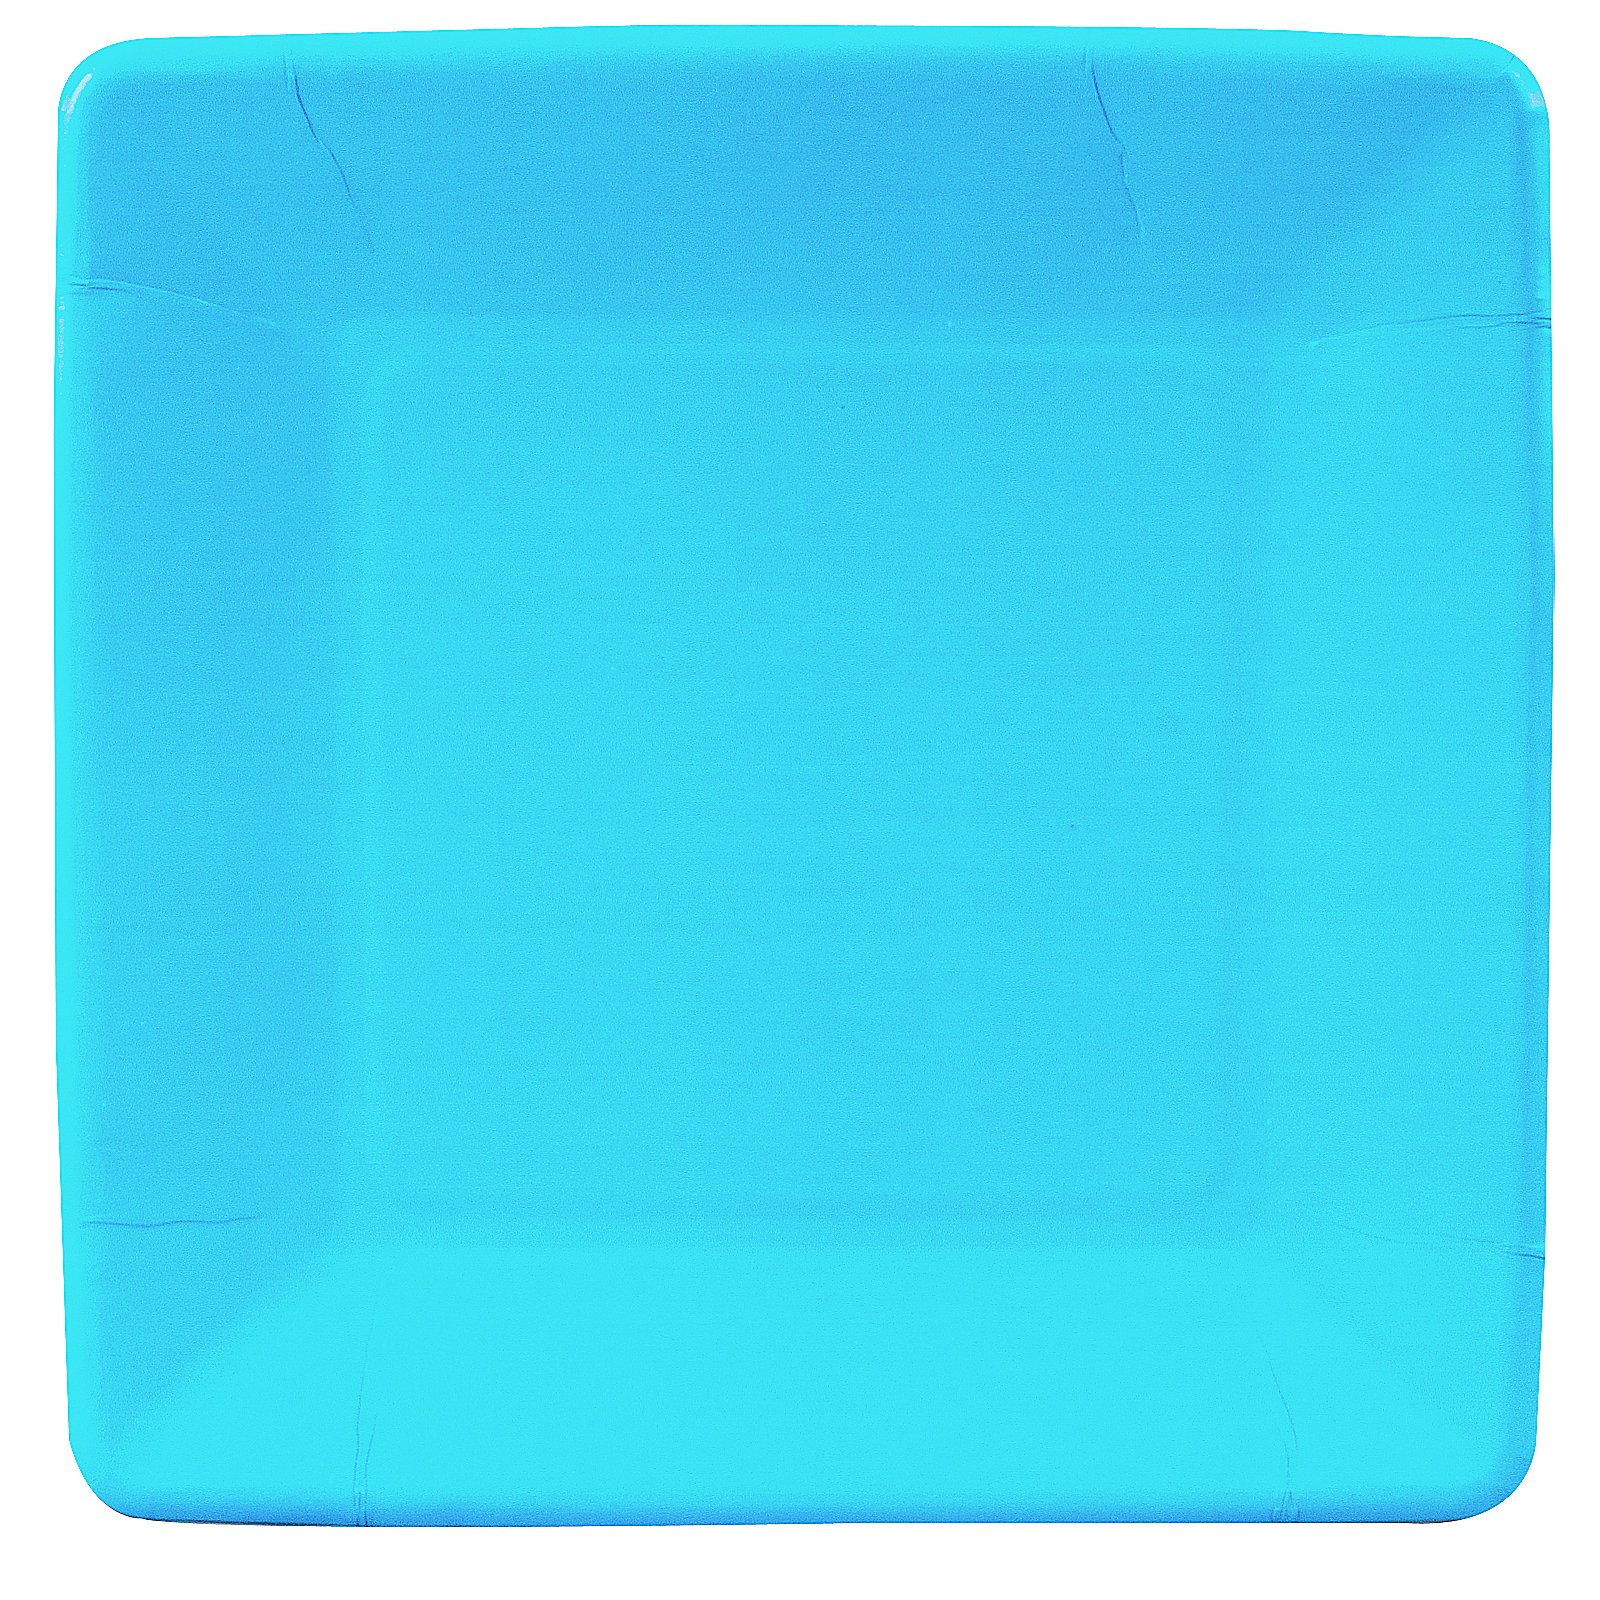 Bermuda Blue (Turquoise) Square Dinner Plates (18 count)